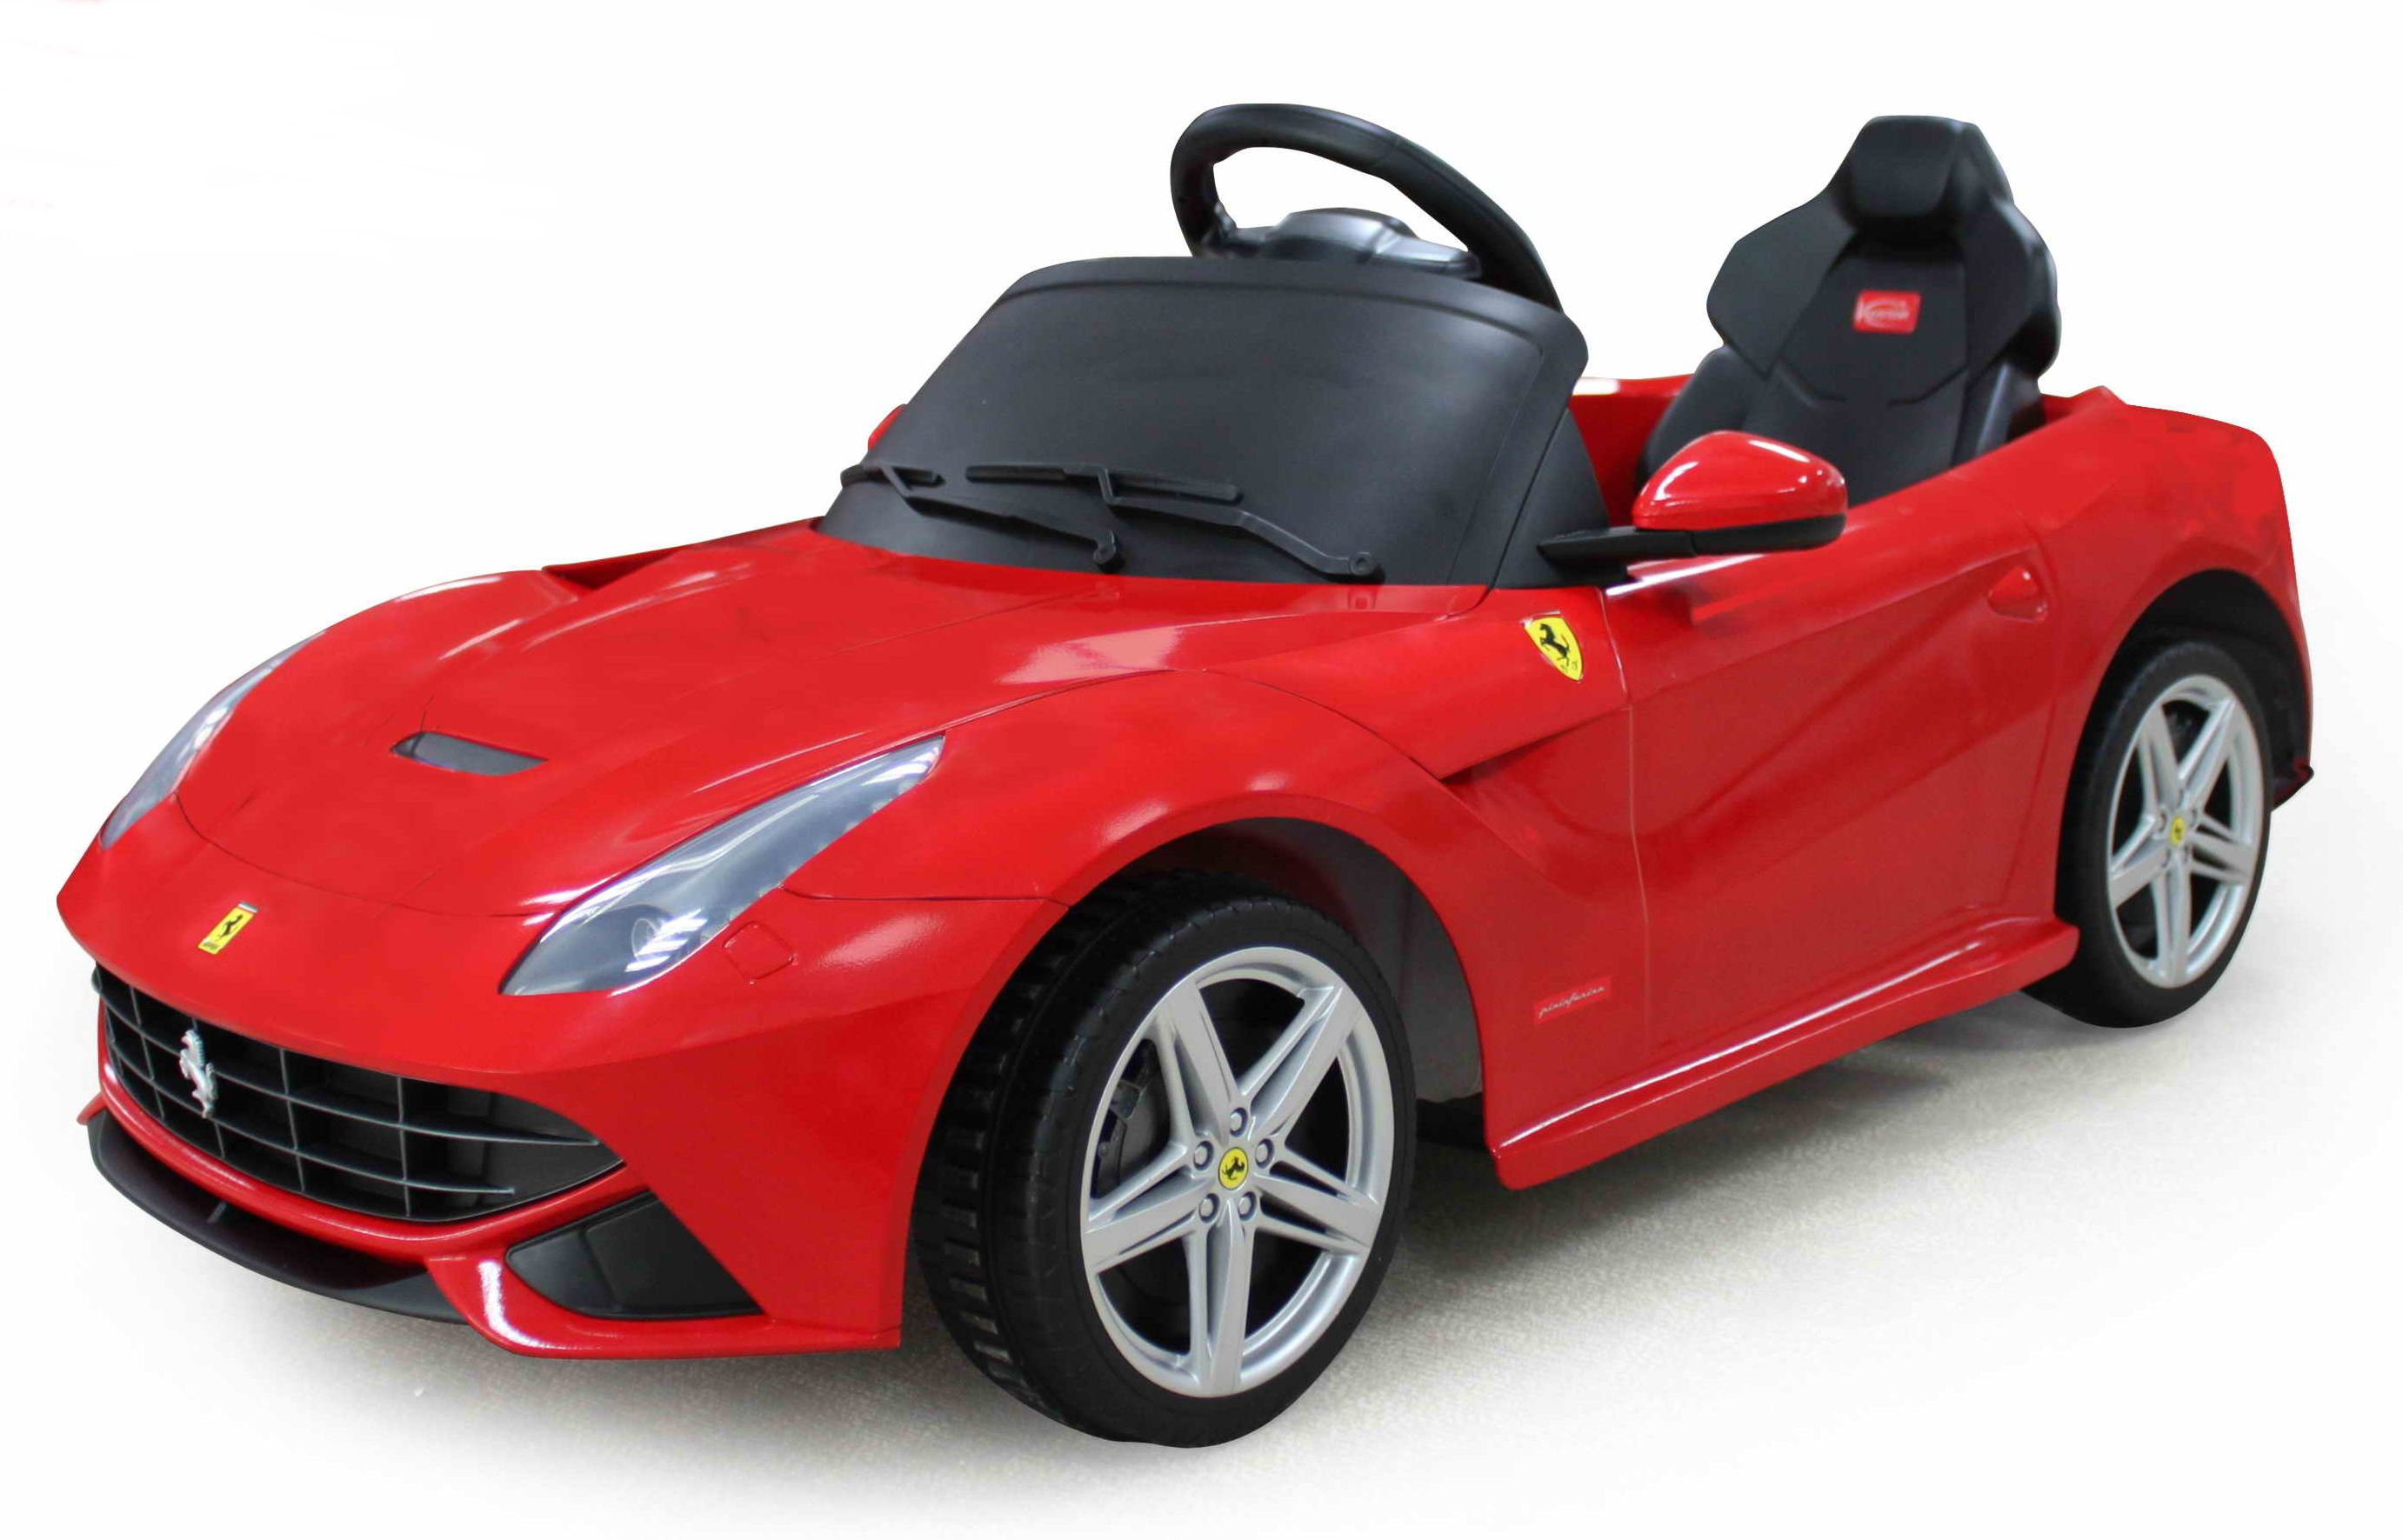 12v ferrari f12 berlinetta kinder elektro auto kinderauto online shop. Black Bedroom Furniture Sets. Home Design Ideas